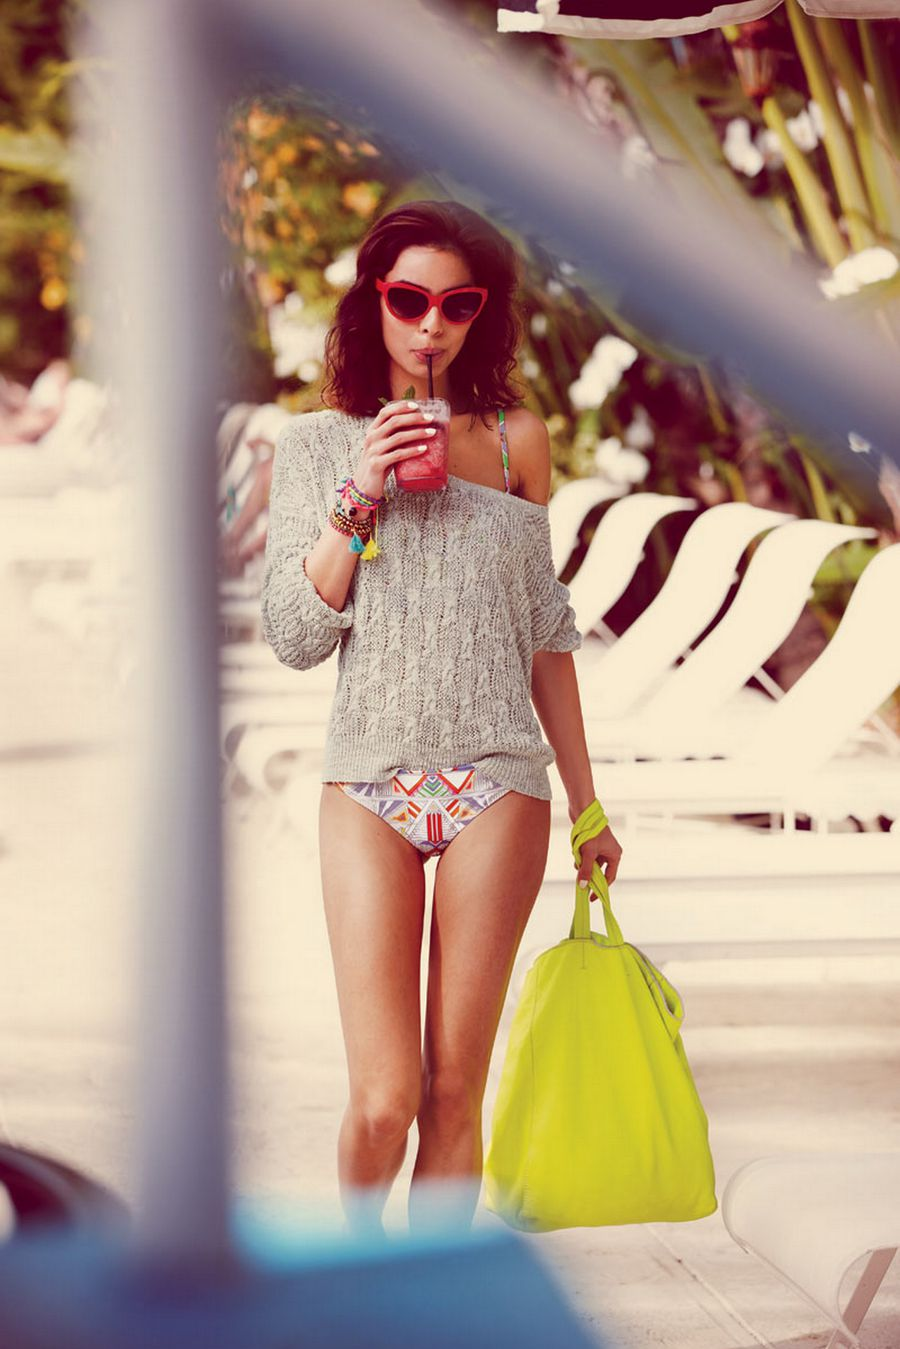 Nicole Trunfio Perfectly Dressed For The Beach By The Free People